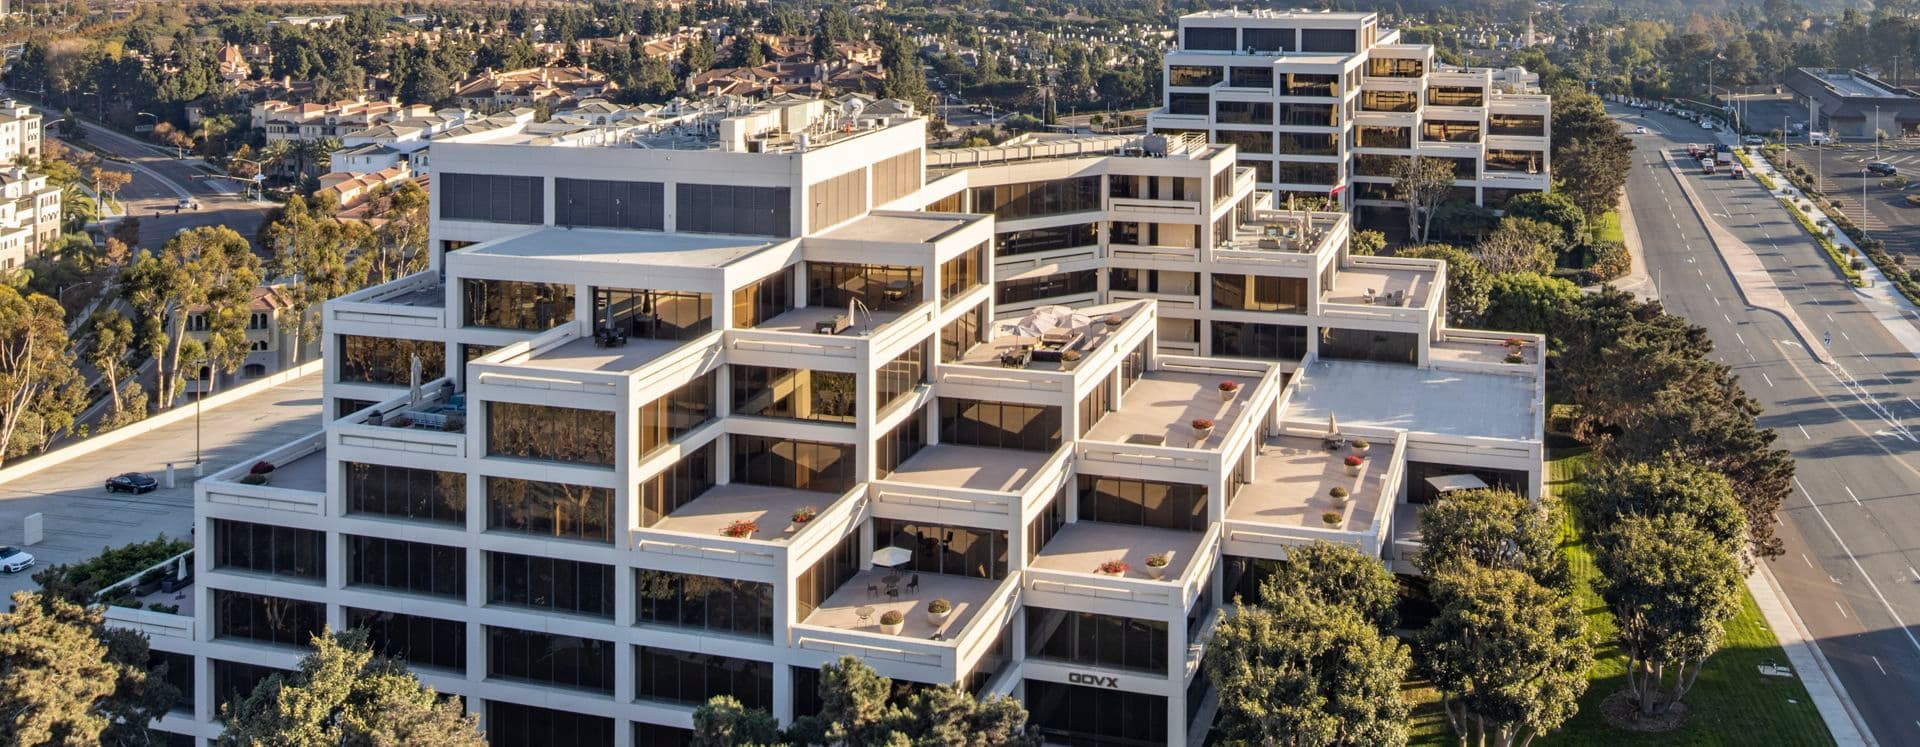 Aerial view of 9191 Towne Centre Drive at La Jolla Gateway in San Diego, CA.